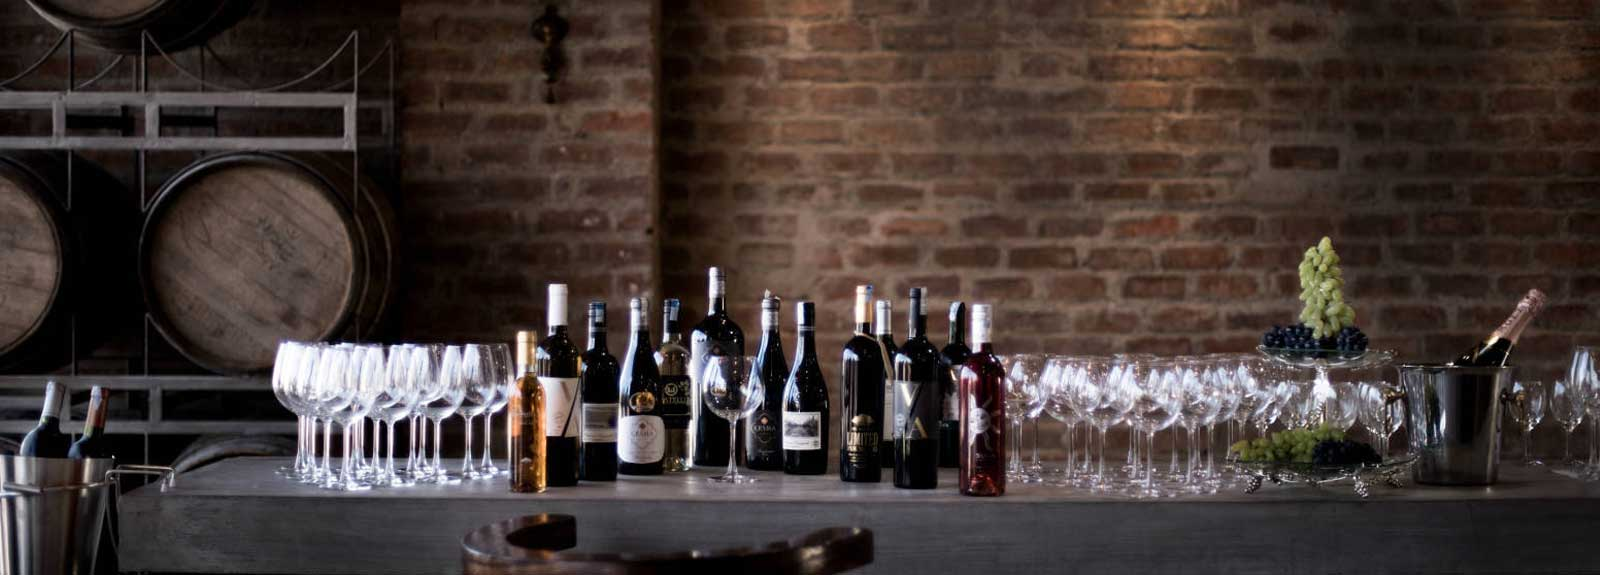 Certified Wine Tasting courses and workshops